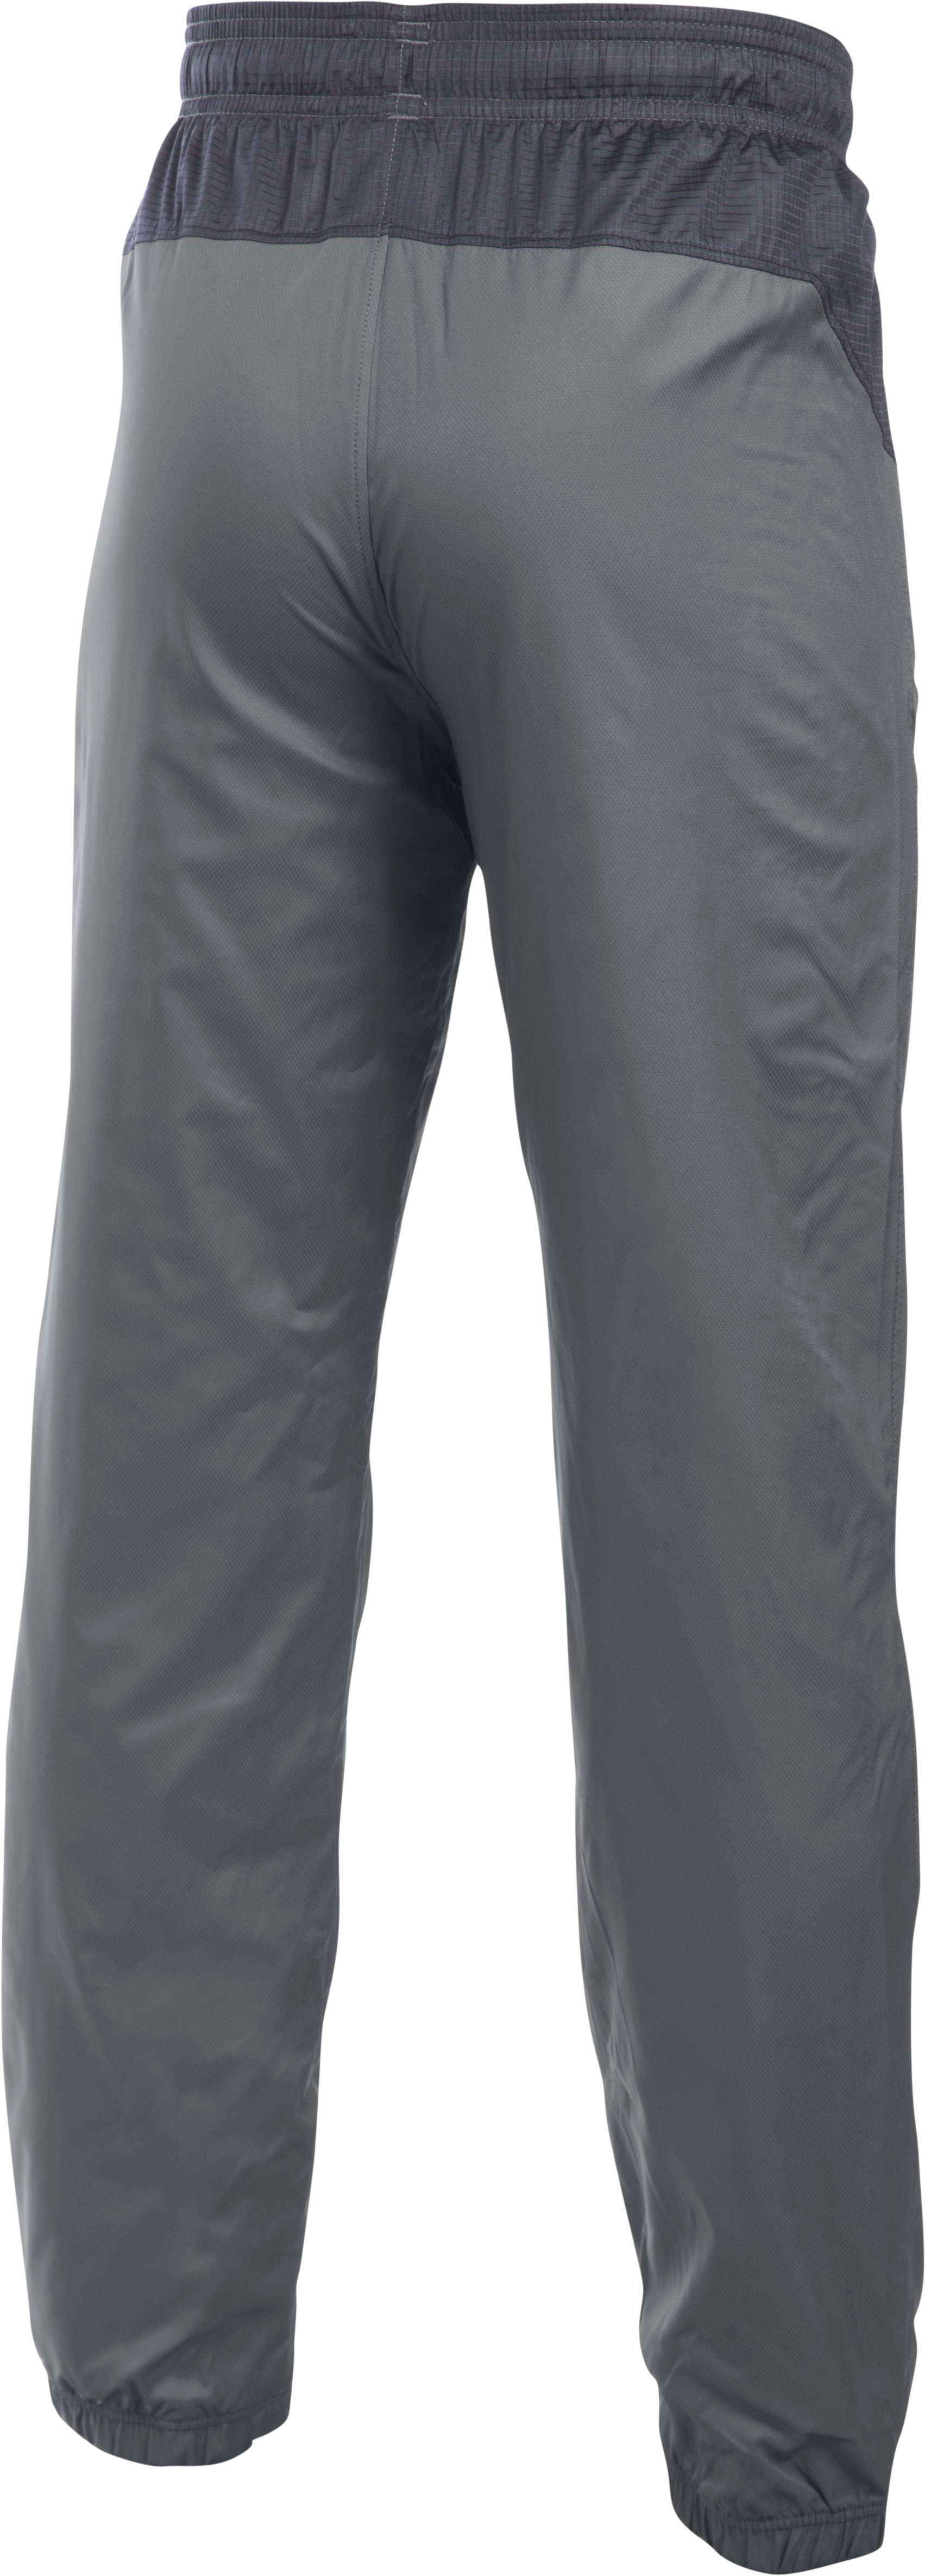 Boys' UA Storm Evaporate Woven Pants, Graphite